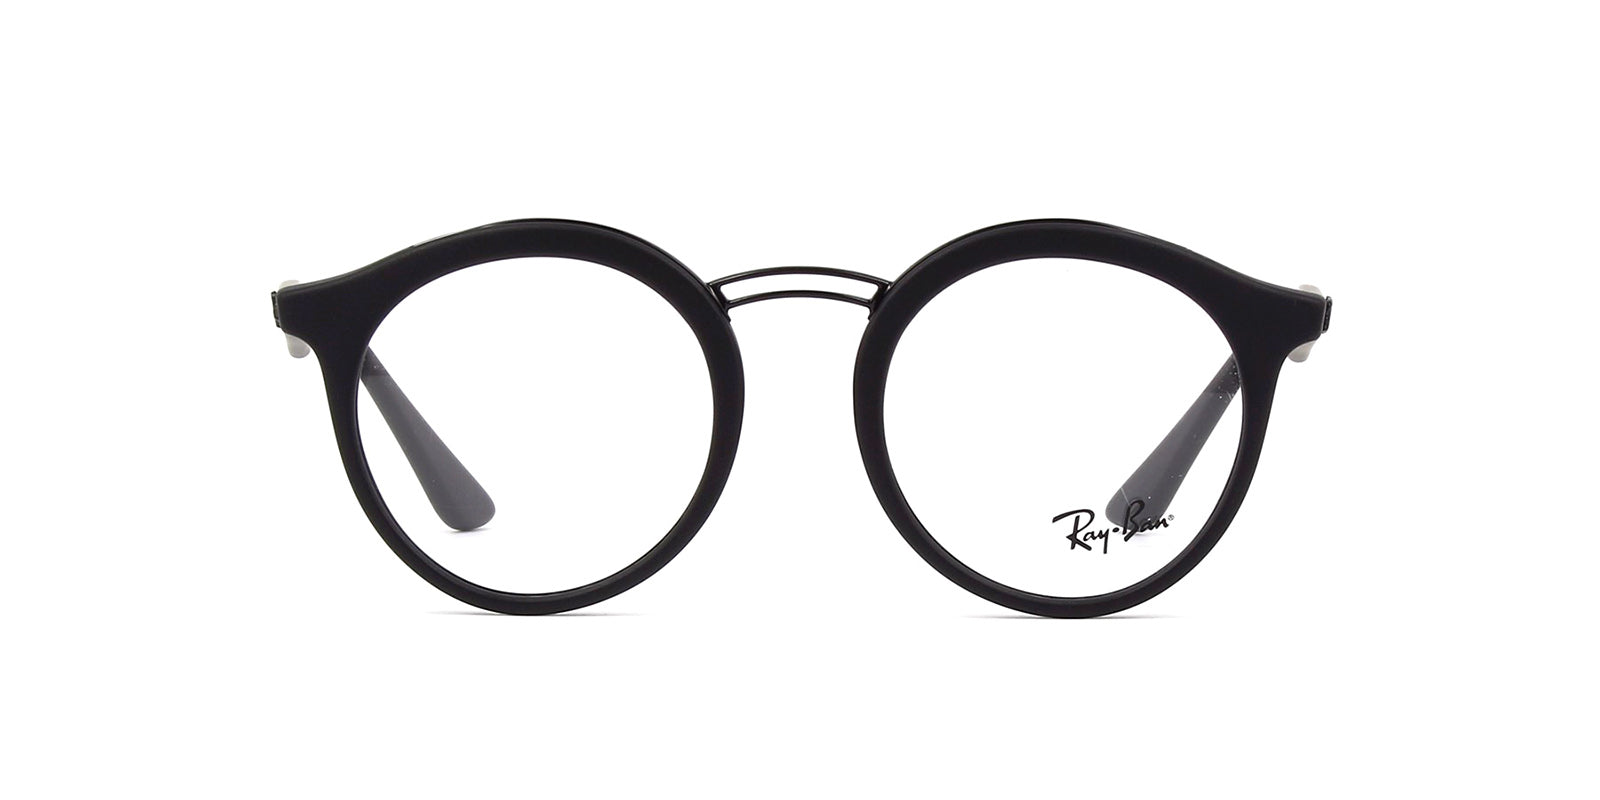 Ray Ban Eyeglasses RB7110 5196 Rx-ABLE